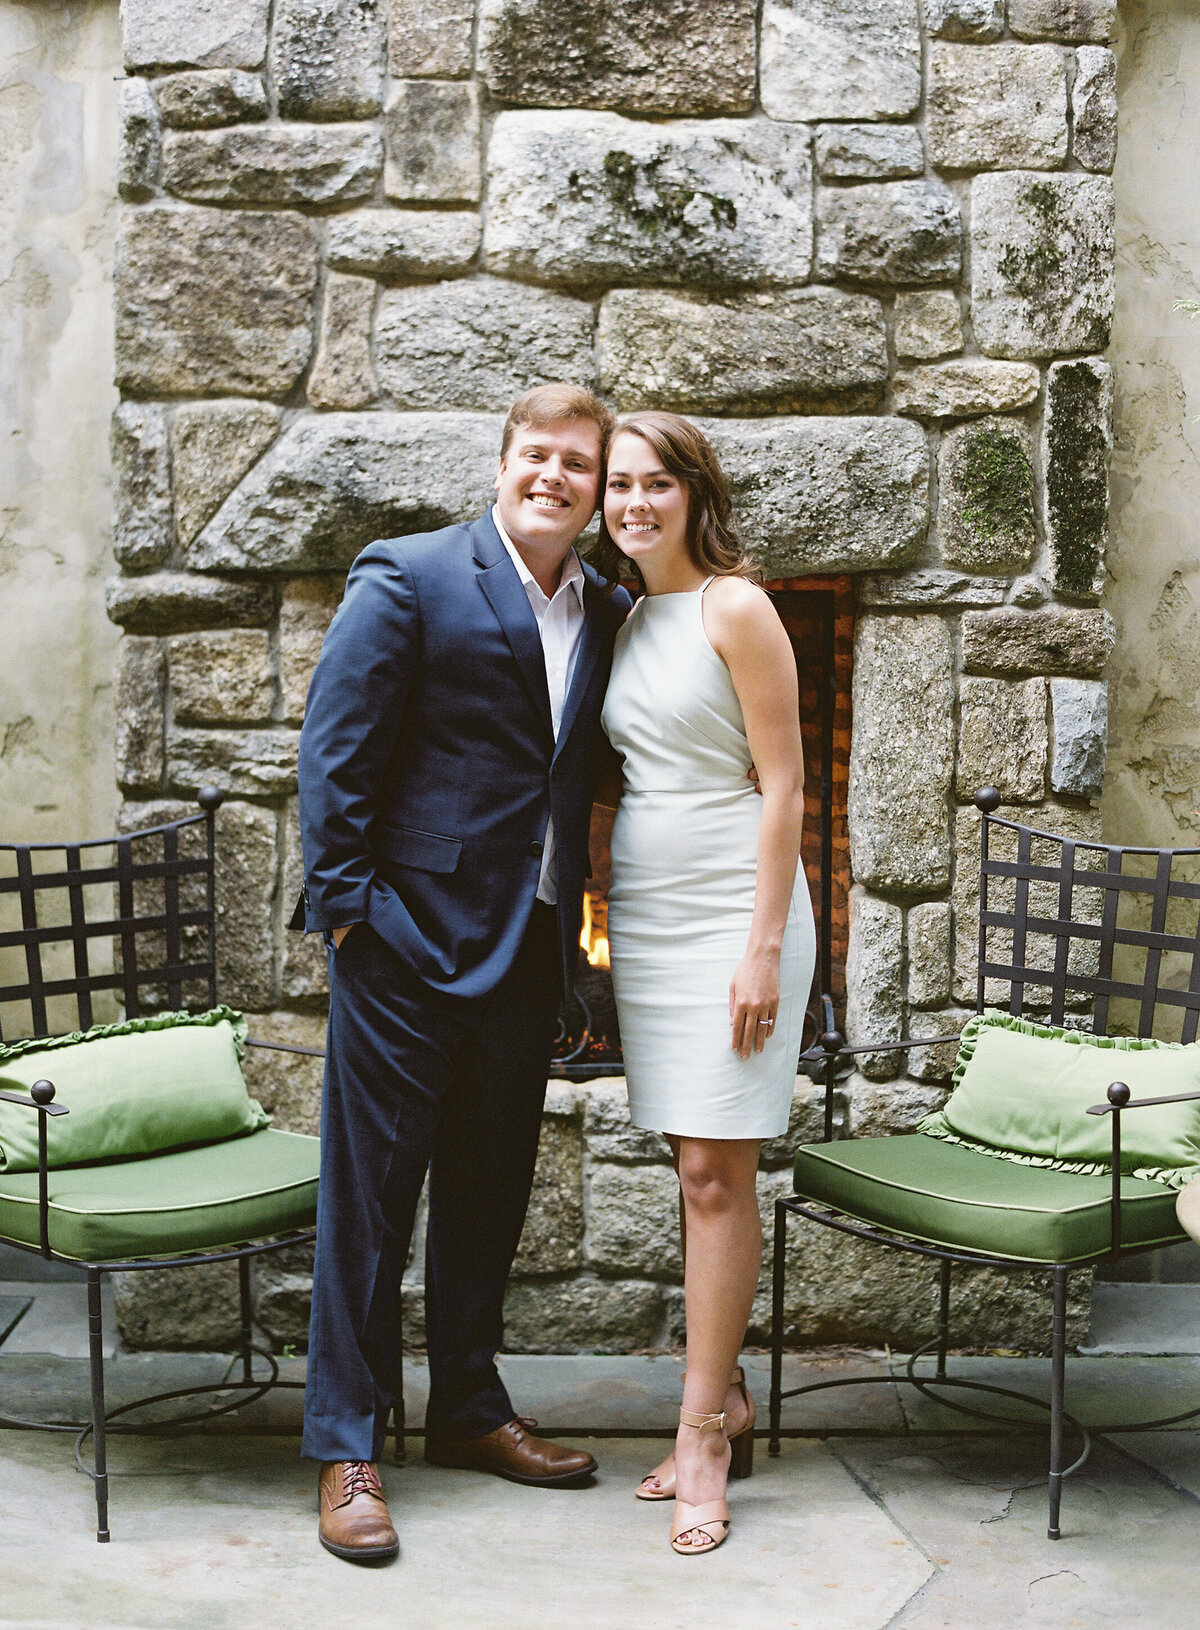 Old-Edwards-Inn-Wedding-Engagement-Photographer-Highlands-Cashiers-North-Carolina-22